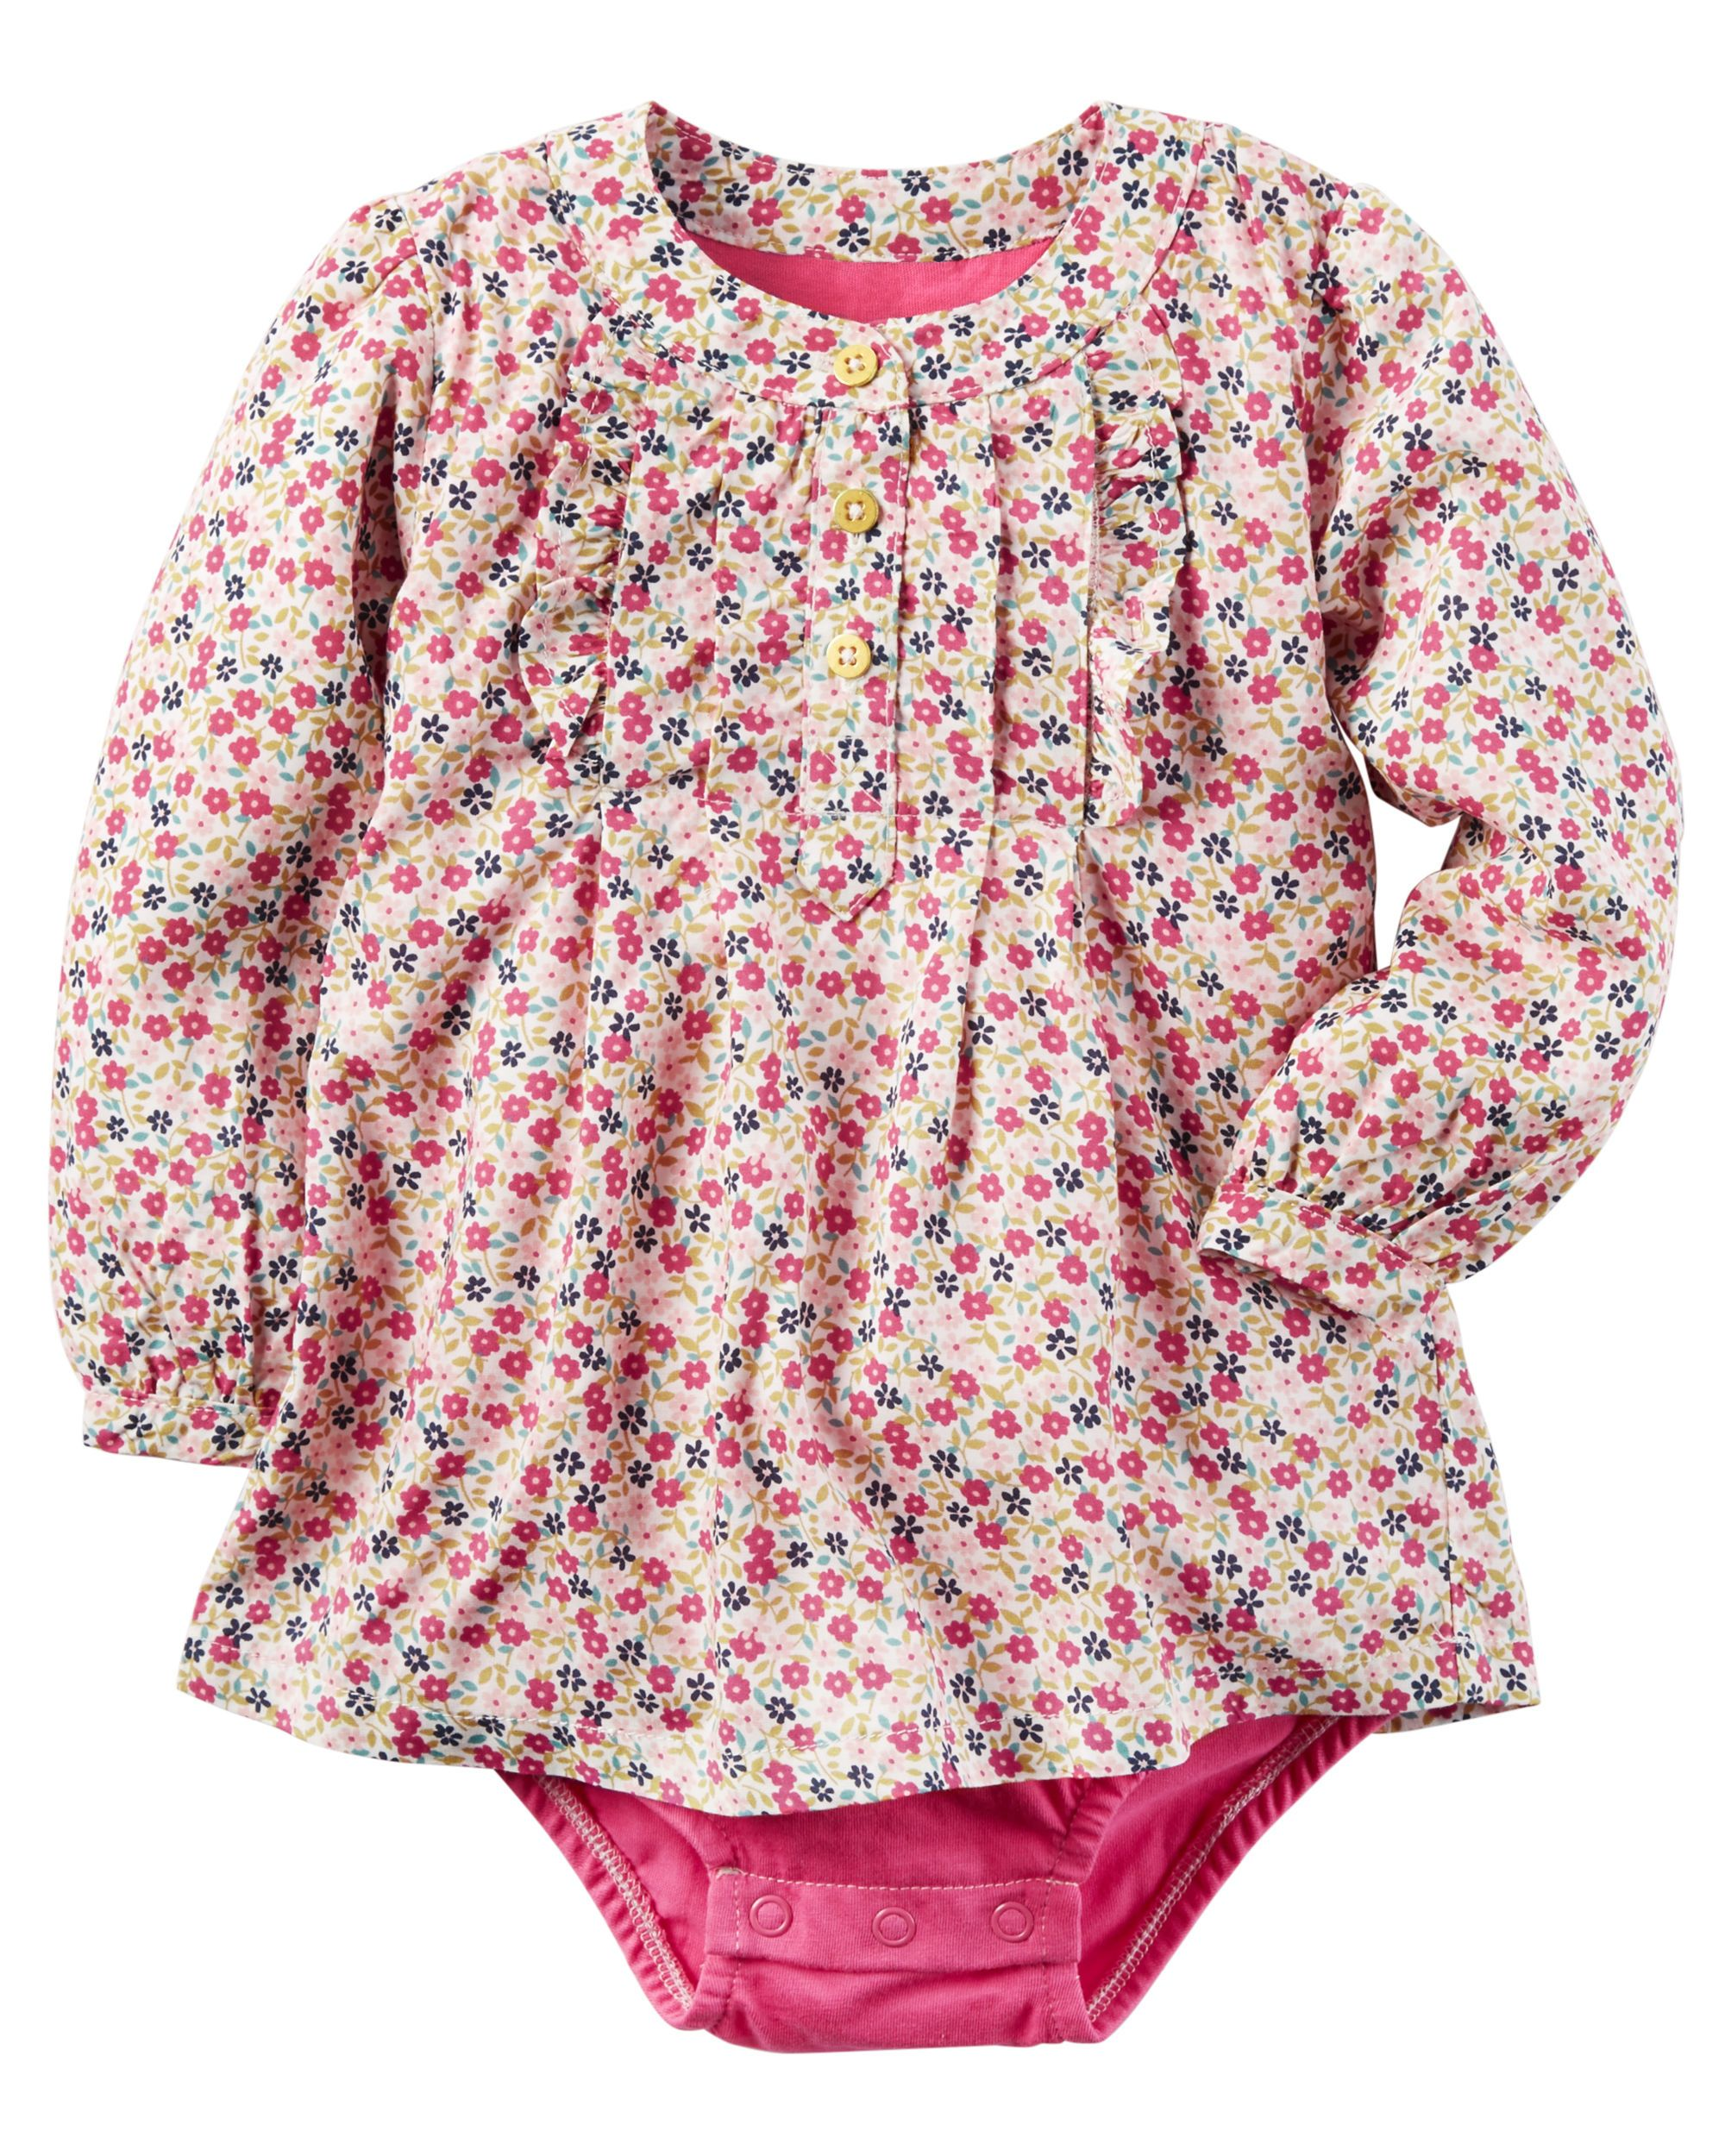 e9b103f1b Baby Girl Floral Poplin Bodysuit from Carters.com. Shop clothing ...